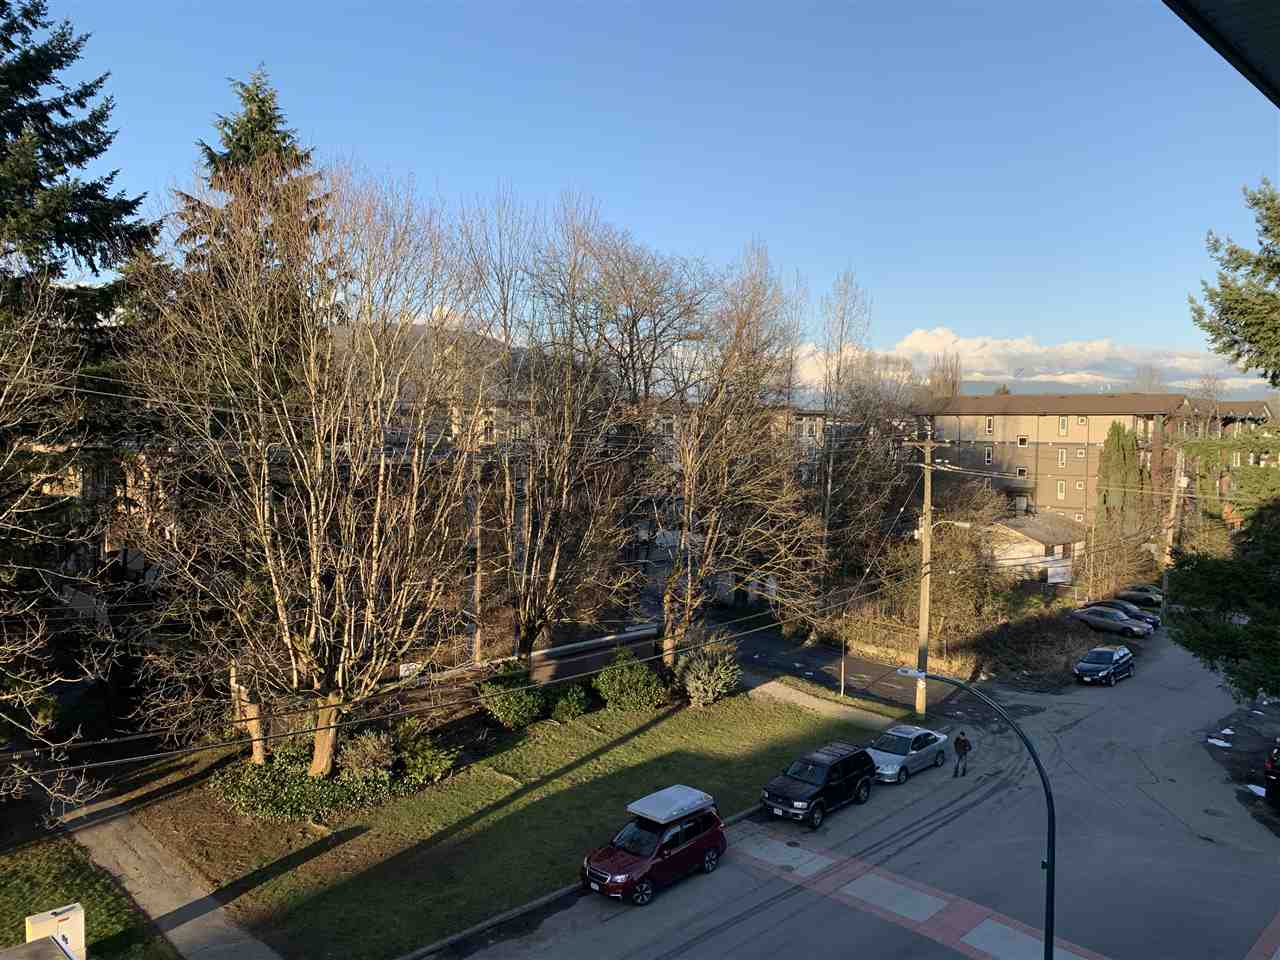 403 2436 KELLY AVENUE - Central Pt Coquitlam Apartment/Condo for sale, 1 Bedroom (R2481447) - #19